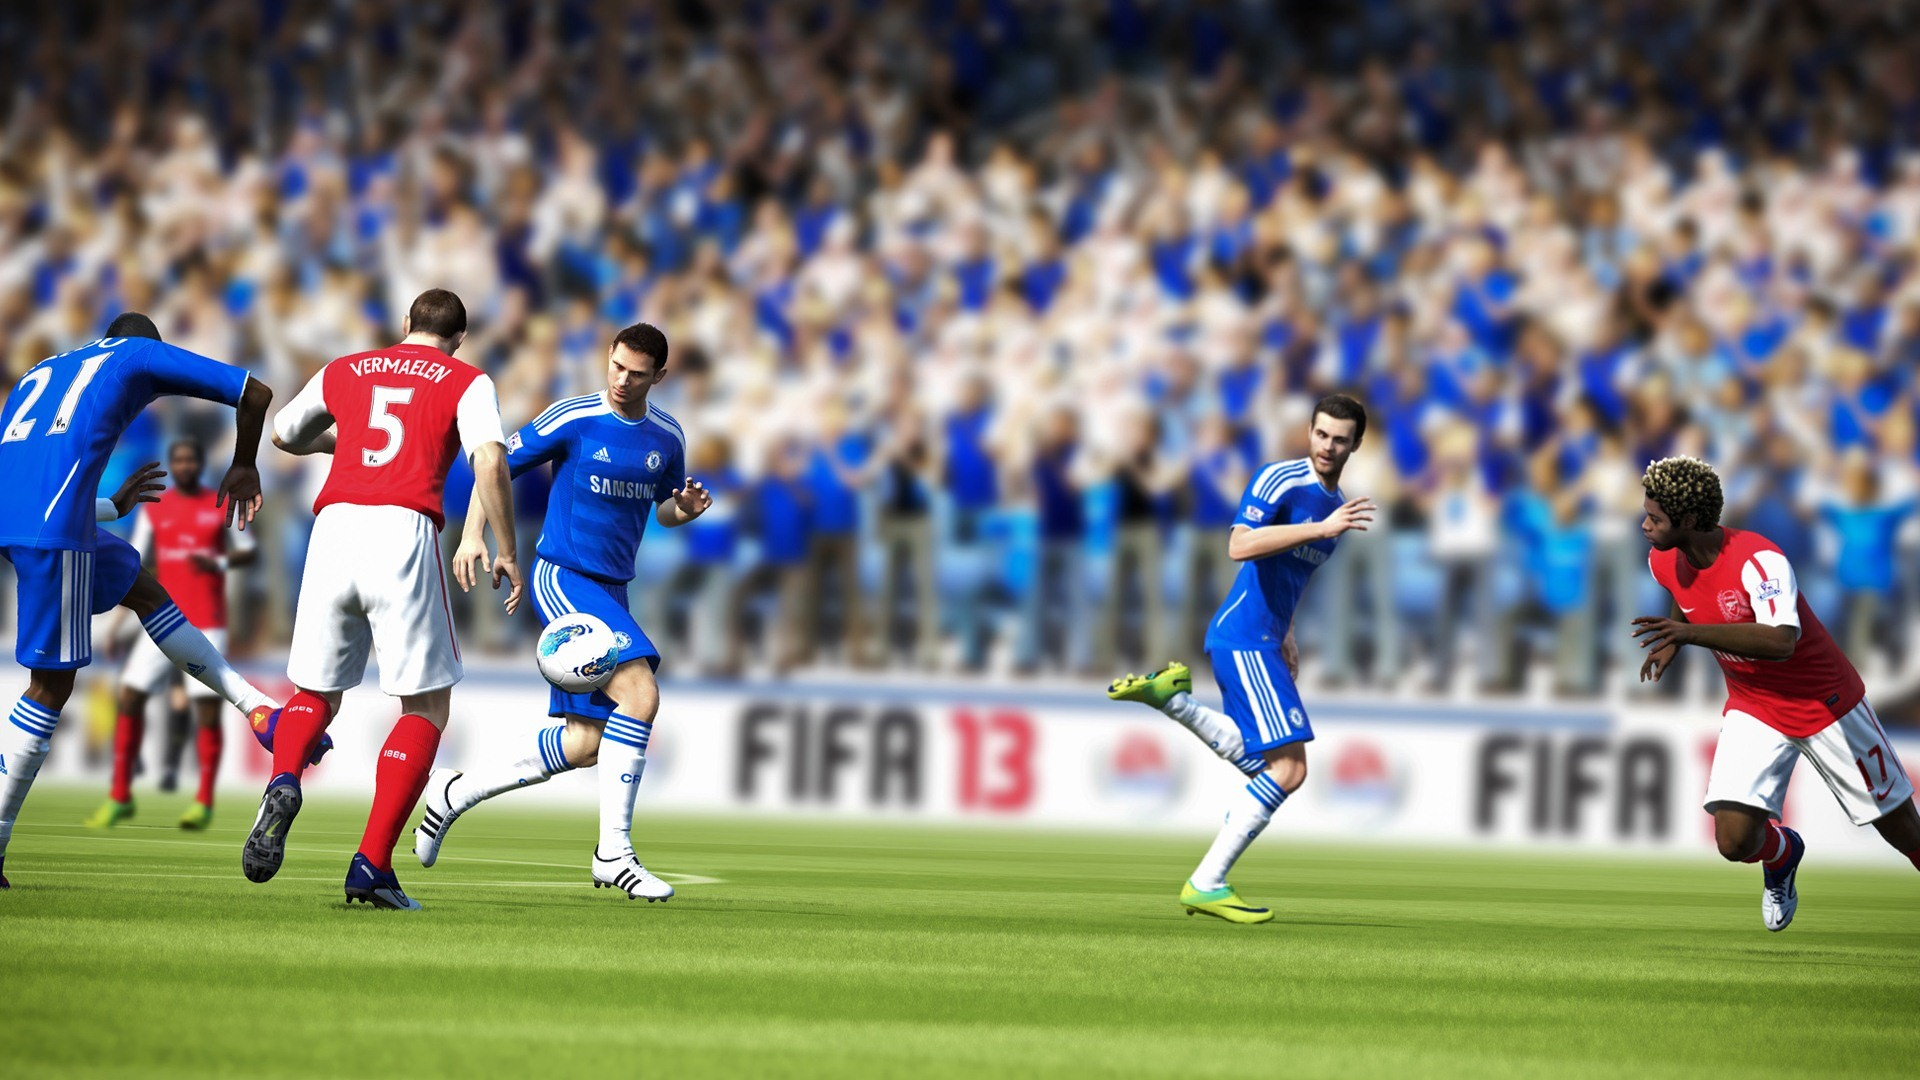 Res: 1920x1080, FIFA 13 HD Wallpapers